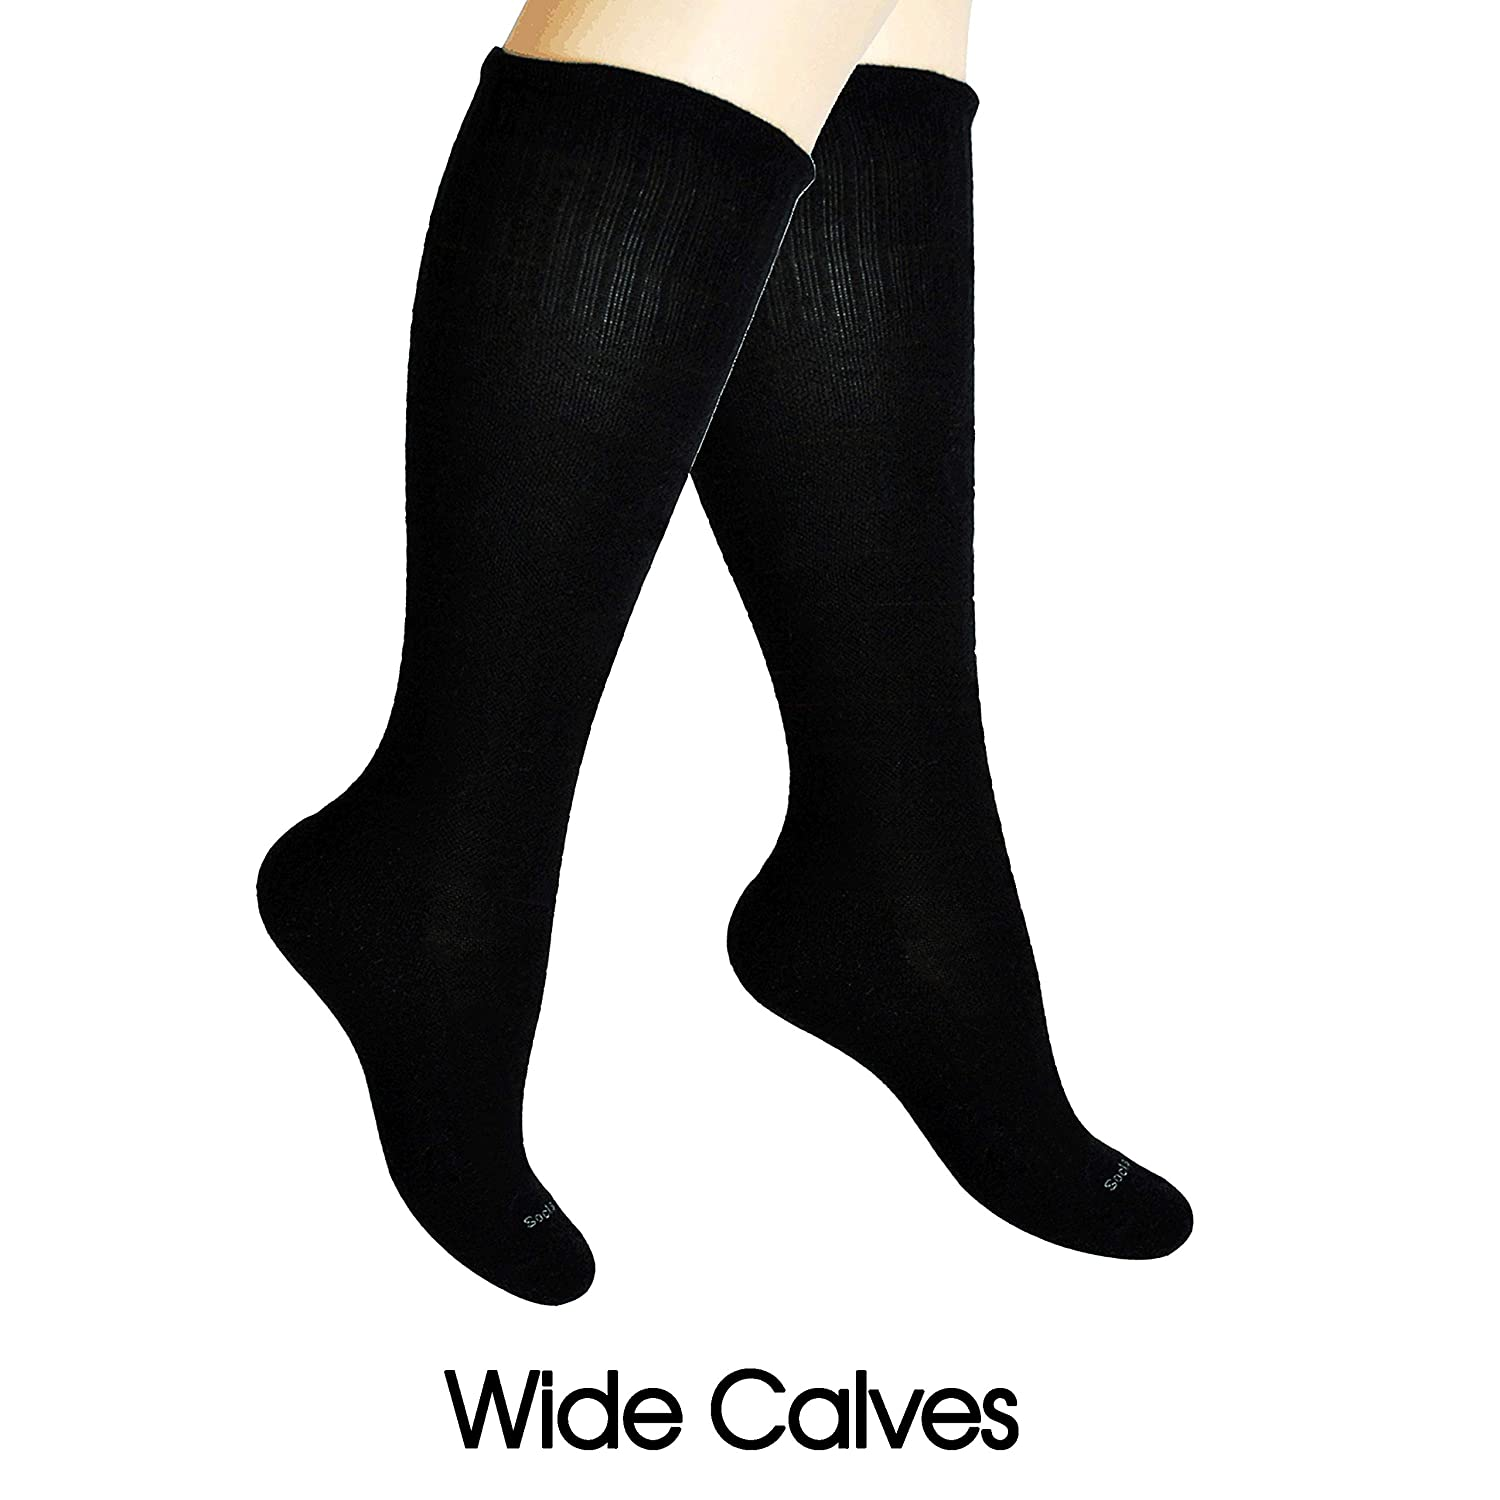 ae8579a8c66 Amazon.com  SocksLane Cotton Compression Socks for Women. Graduated ...